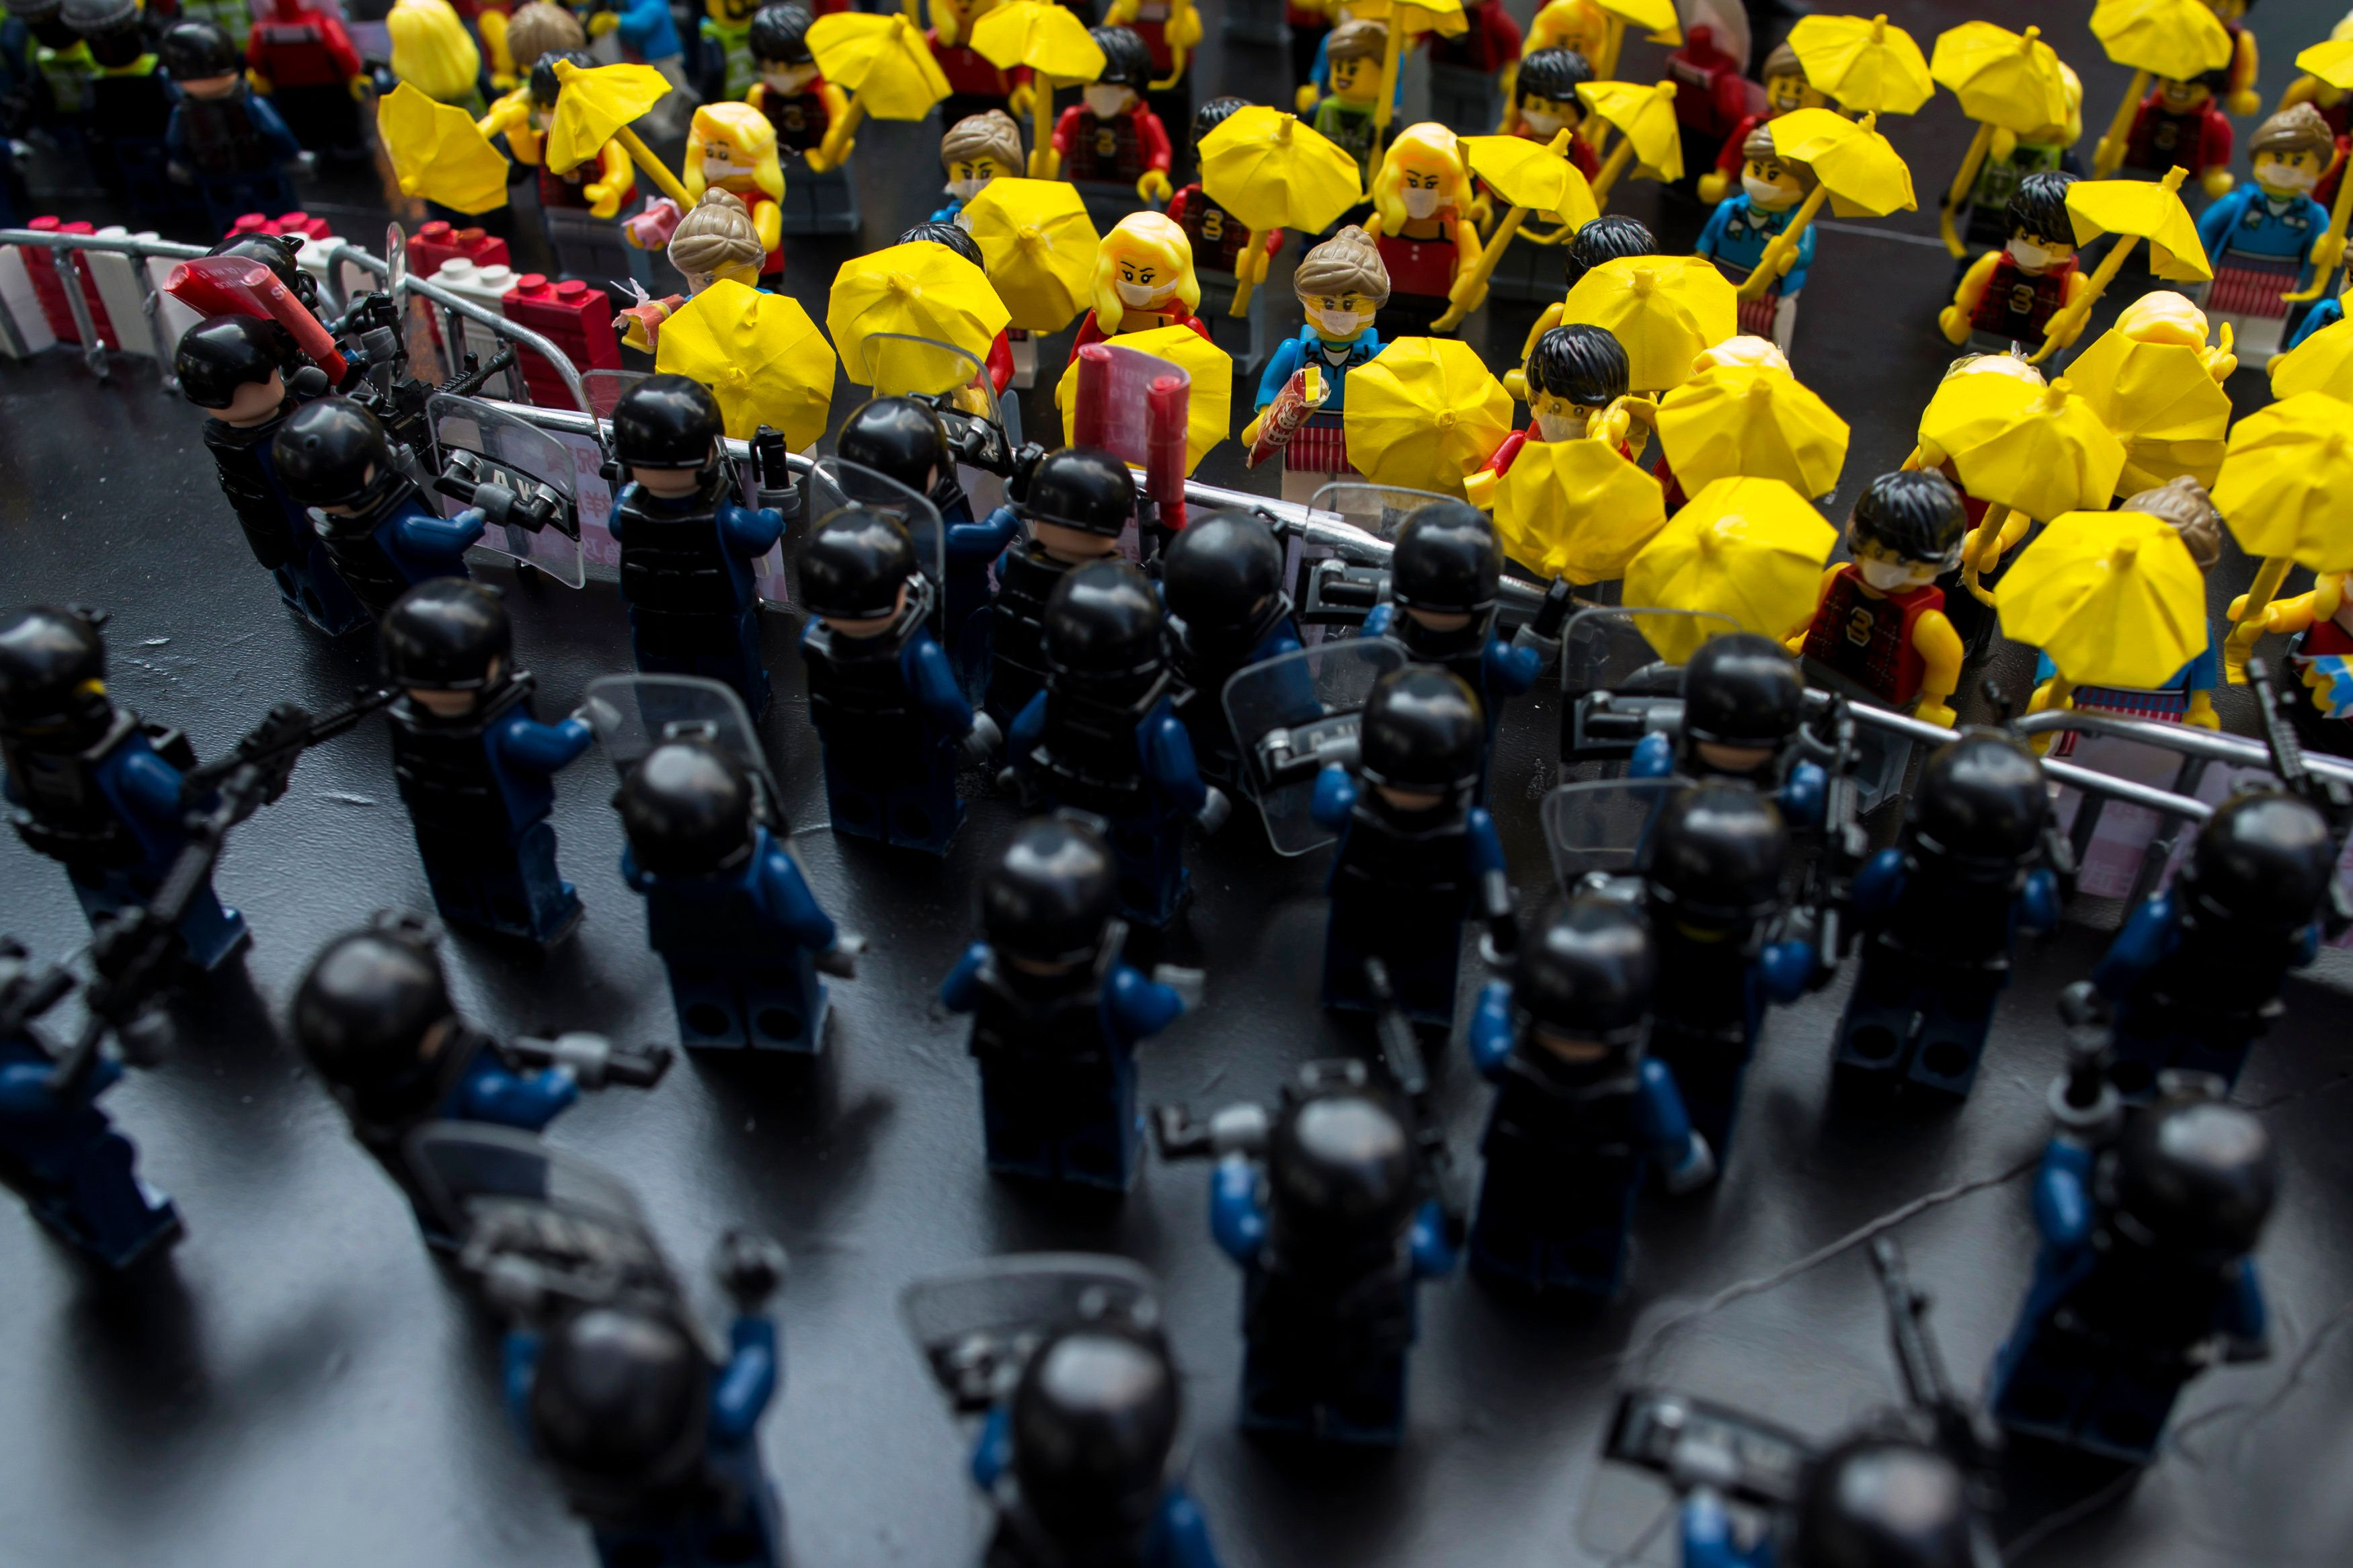 Toy Lego characters depicting a scene of protesters confronting riot police are seen on a table outside the government headqu